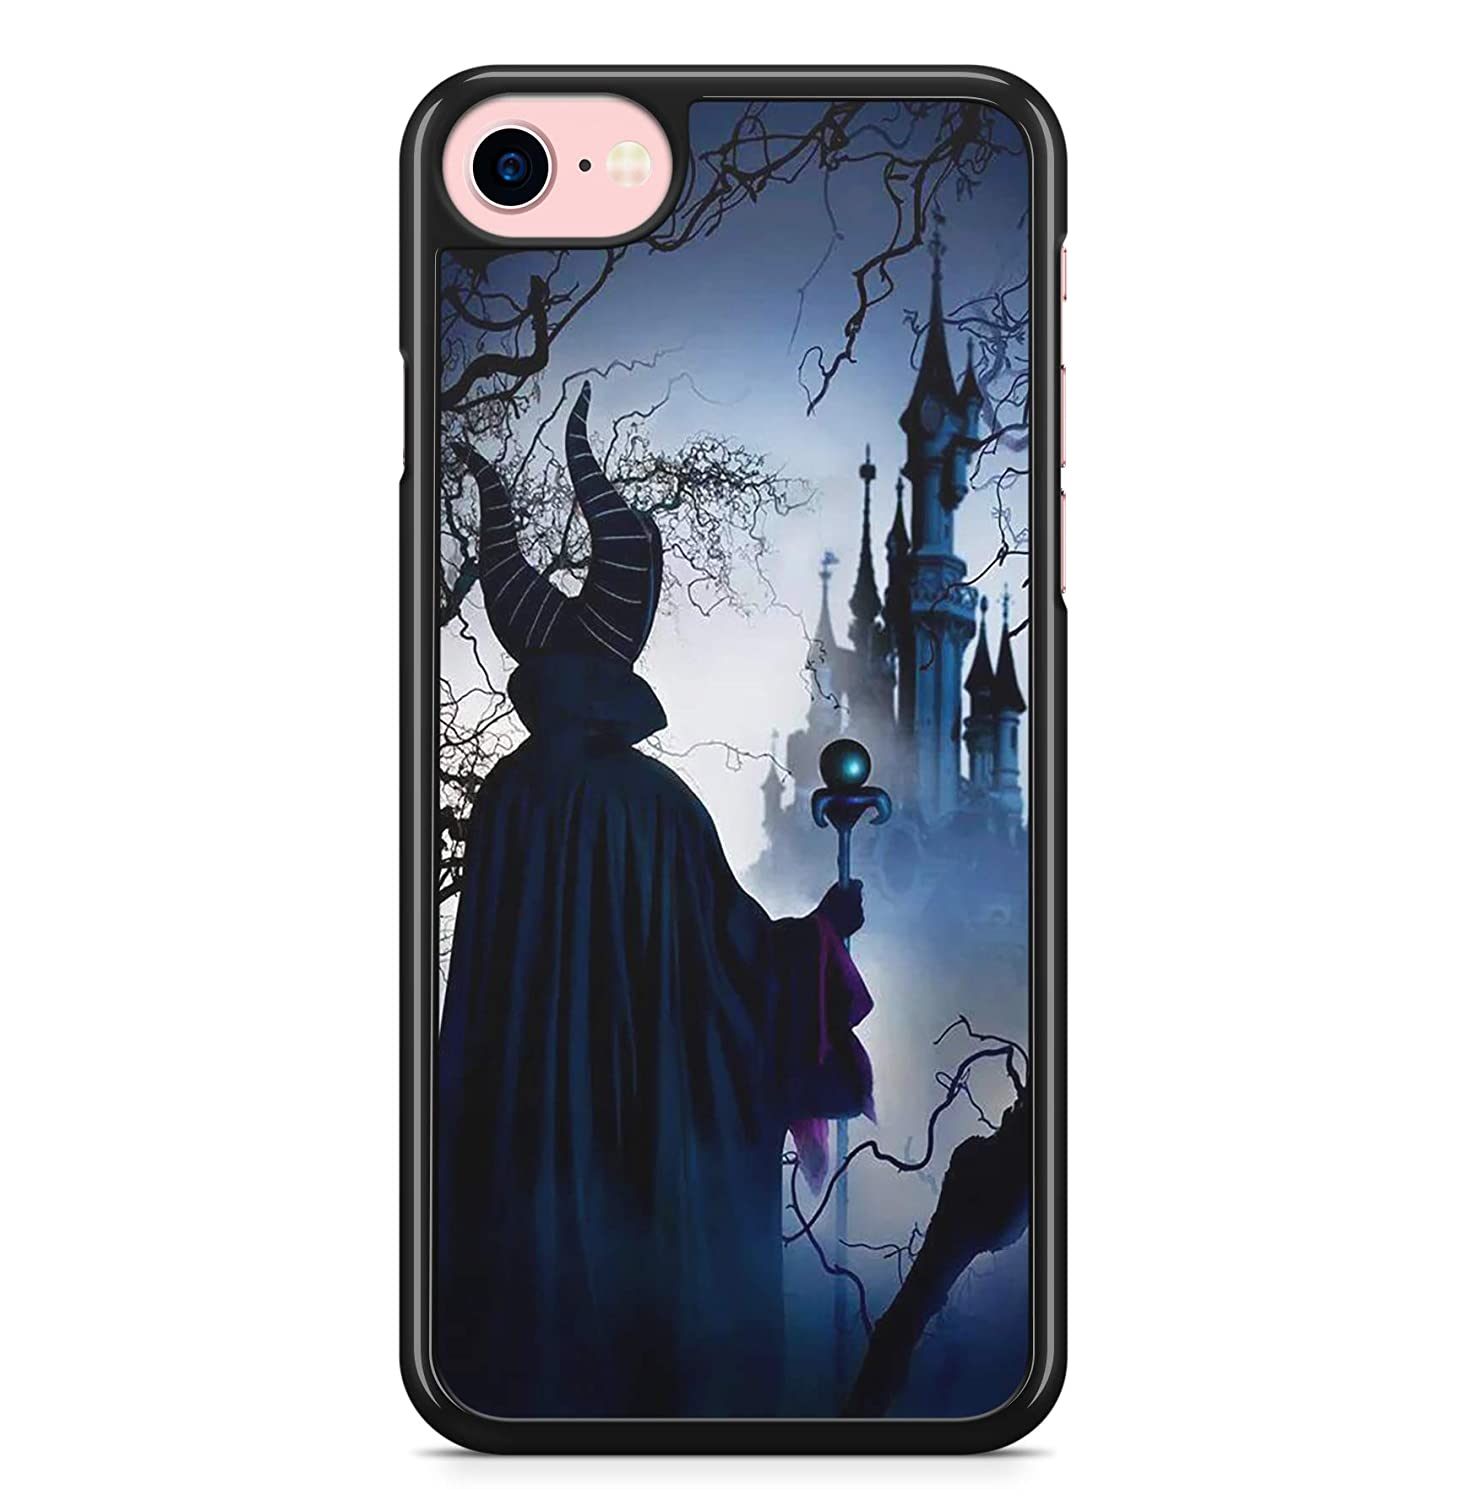 Coque iphone 4 4s 5 5s se 5c 6s plus 7 8 x xs max xr malé fique maleficent disney fanart